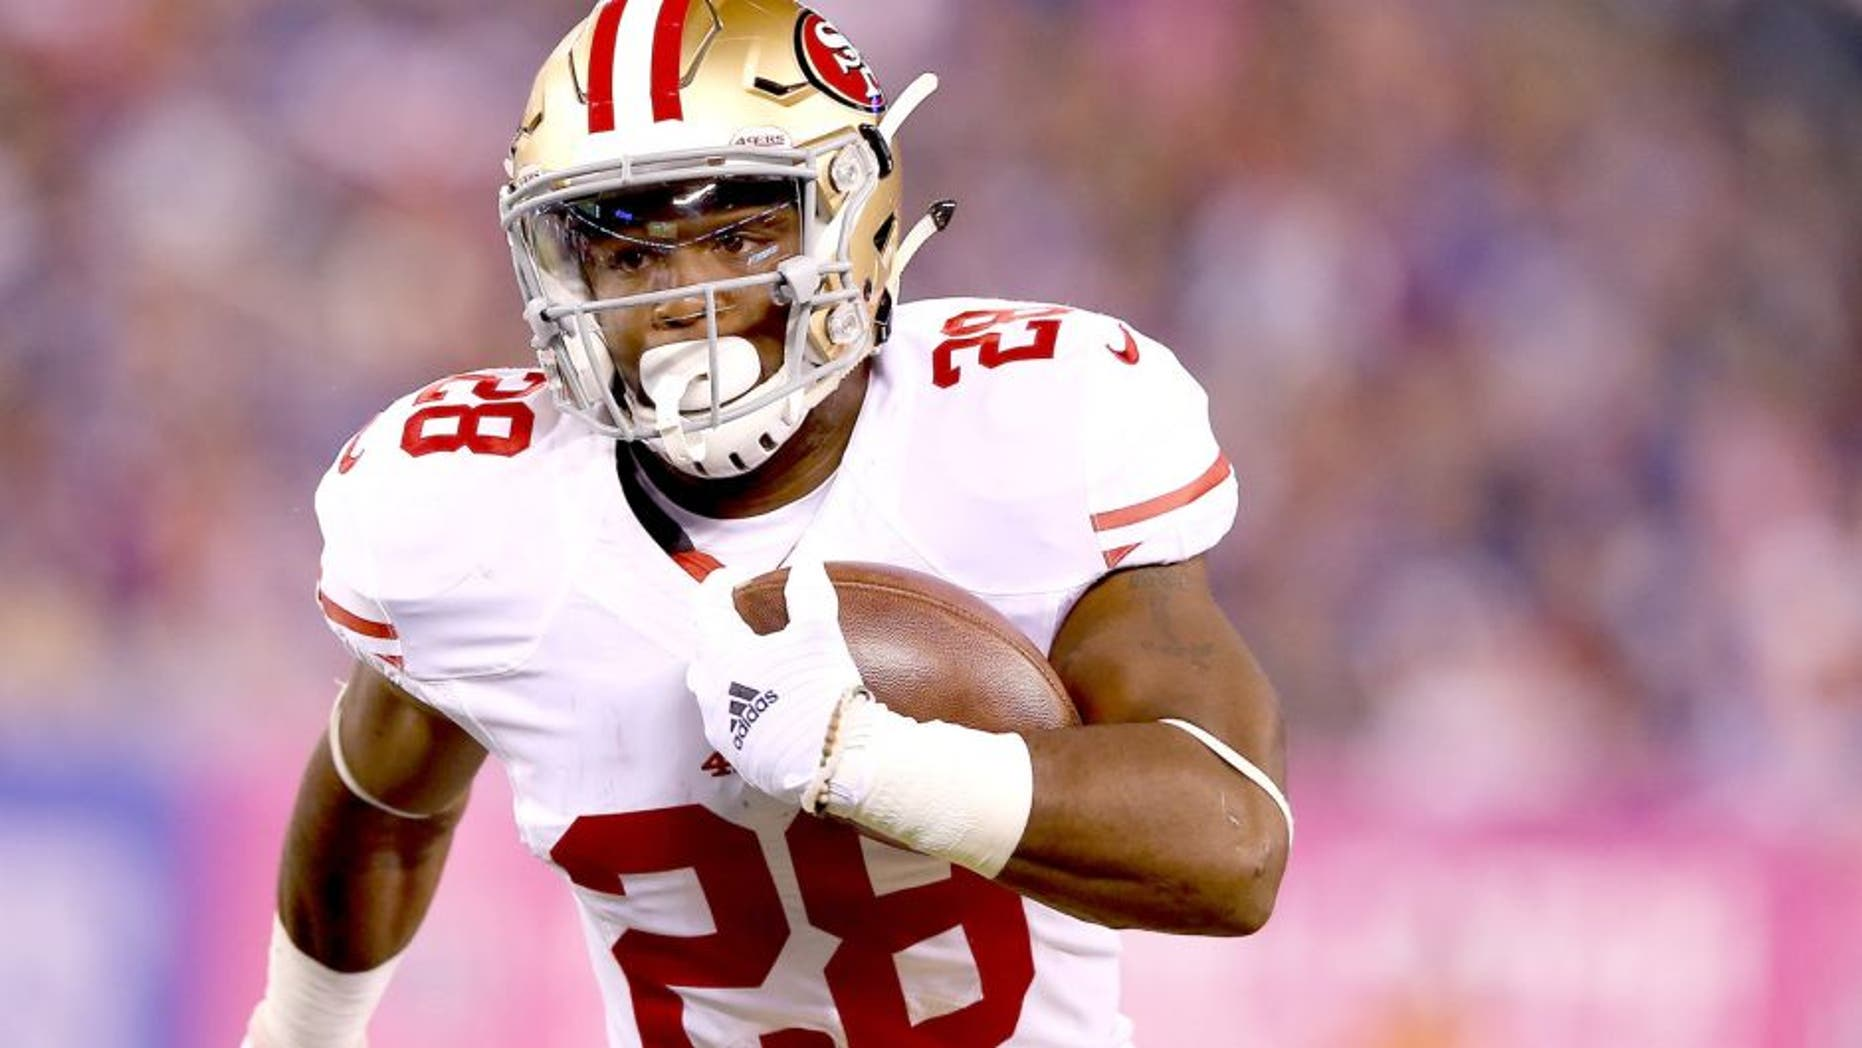 EAST RUTHERFORD, NJ - OCTOBER 11: Carlos Hyde #28 of the San Francisco 49ers carries the ball in the first quarter against the New York Giants during at MetLife Stadium on October 11, 2015 in East Rutherford, New Jersey. (Photo by Elsa/Getty Images)